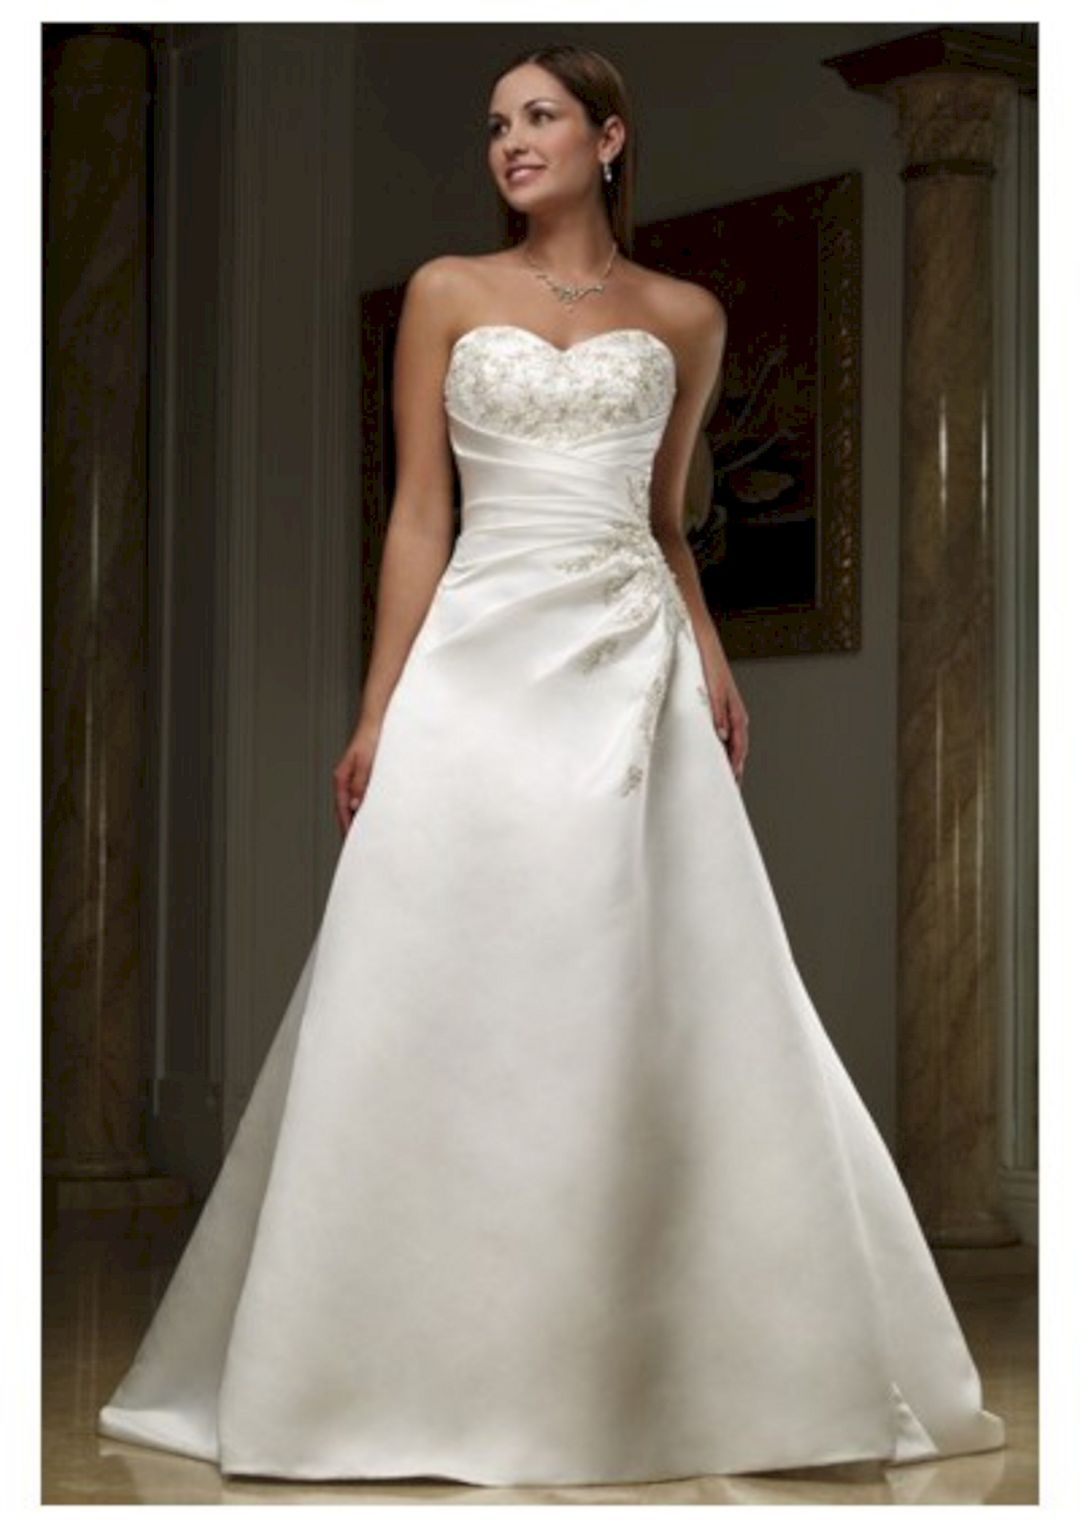 30 Sweetheart Neckline Wedding Gown For Bride Looks More